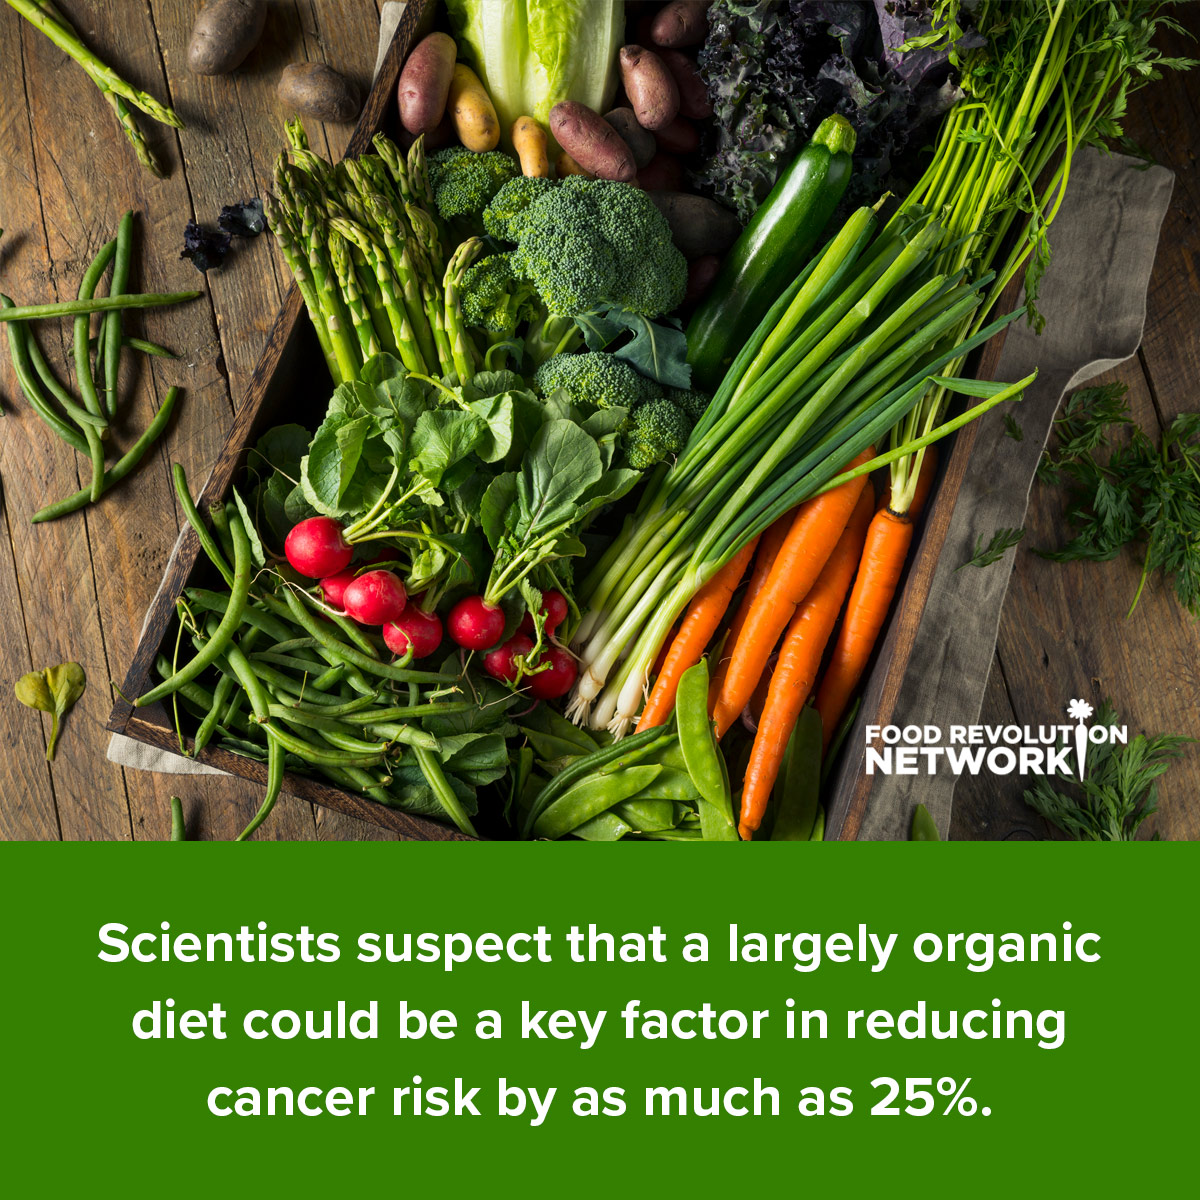 Scientists suspect that a largely organic diet could be a key factor in reducing cancer risk by as much as 25%.